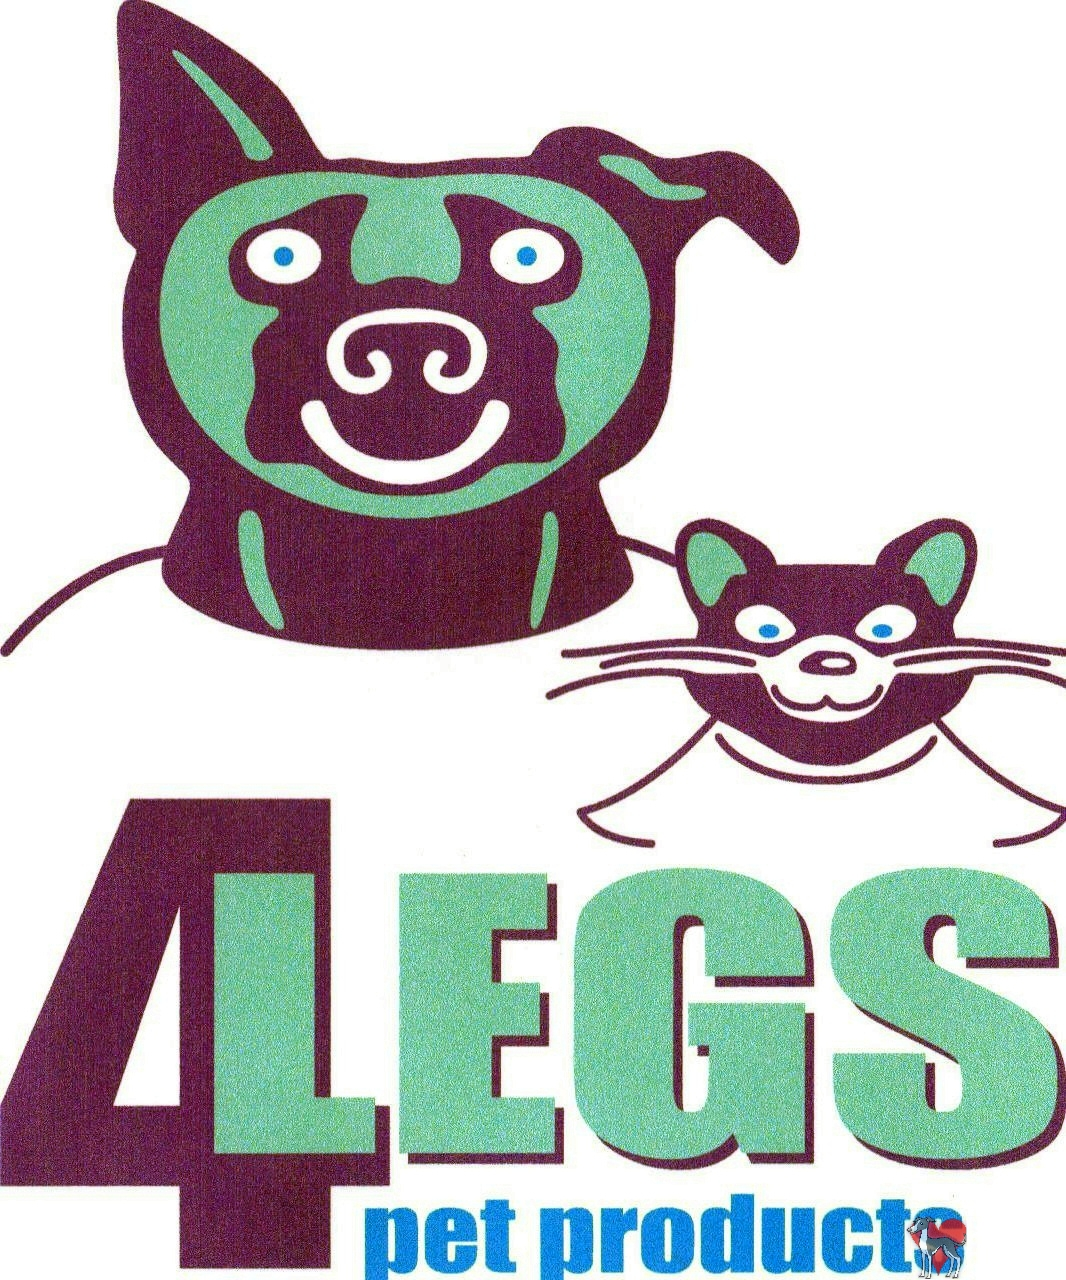 4legs pet products, 4legspetproducts, chicago pet products, pet food delivery, chicago, clark, northside, north, dog, cat, pet, pets, italian greyhound, italian greyhounds, curbside, delivery